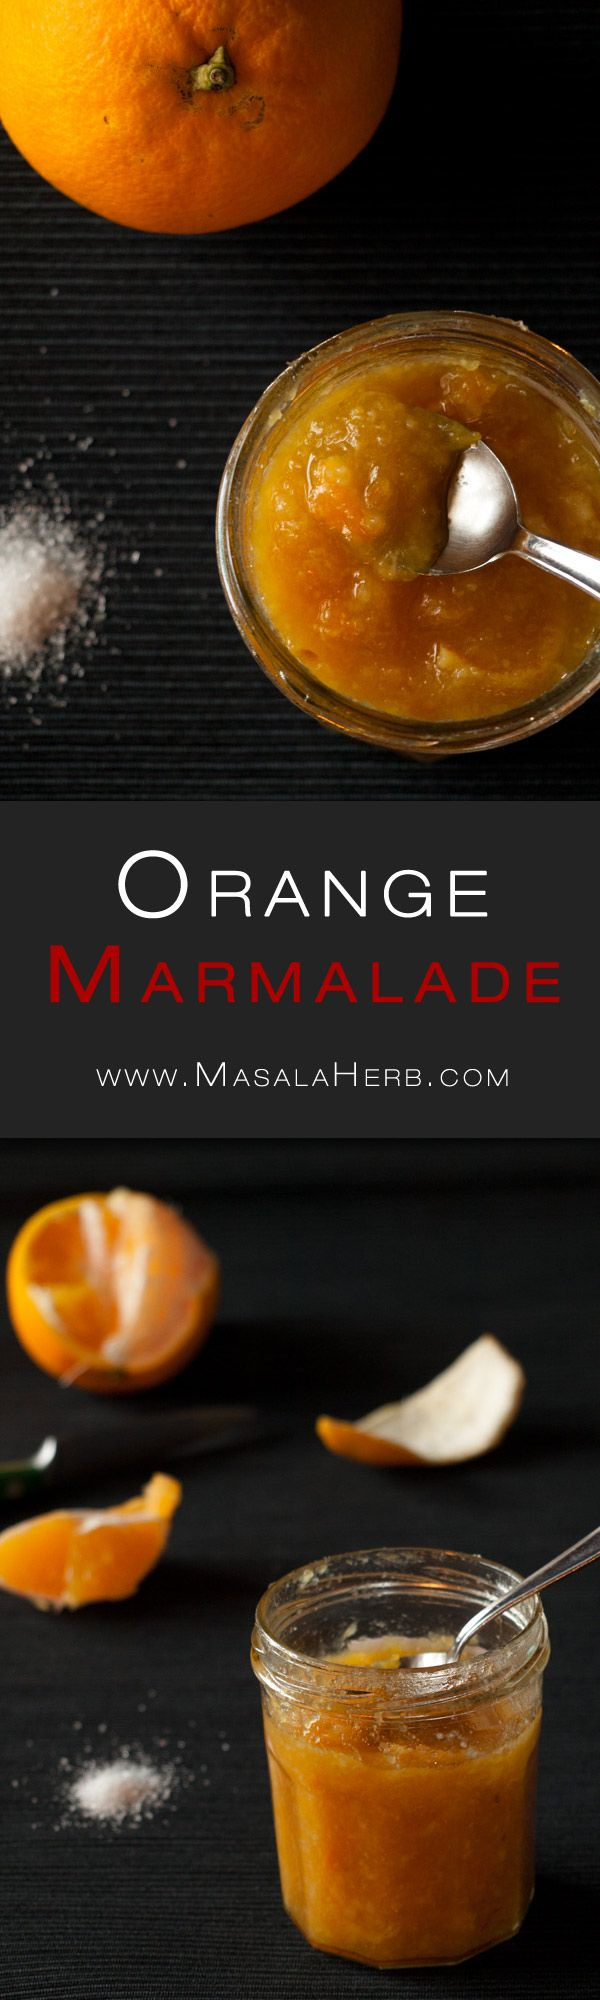 Orange Marmalade Recipe - How to make orange marmalade www.MasalaHerb.com #french #Recipe #masalaherb #jam